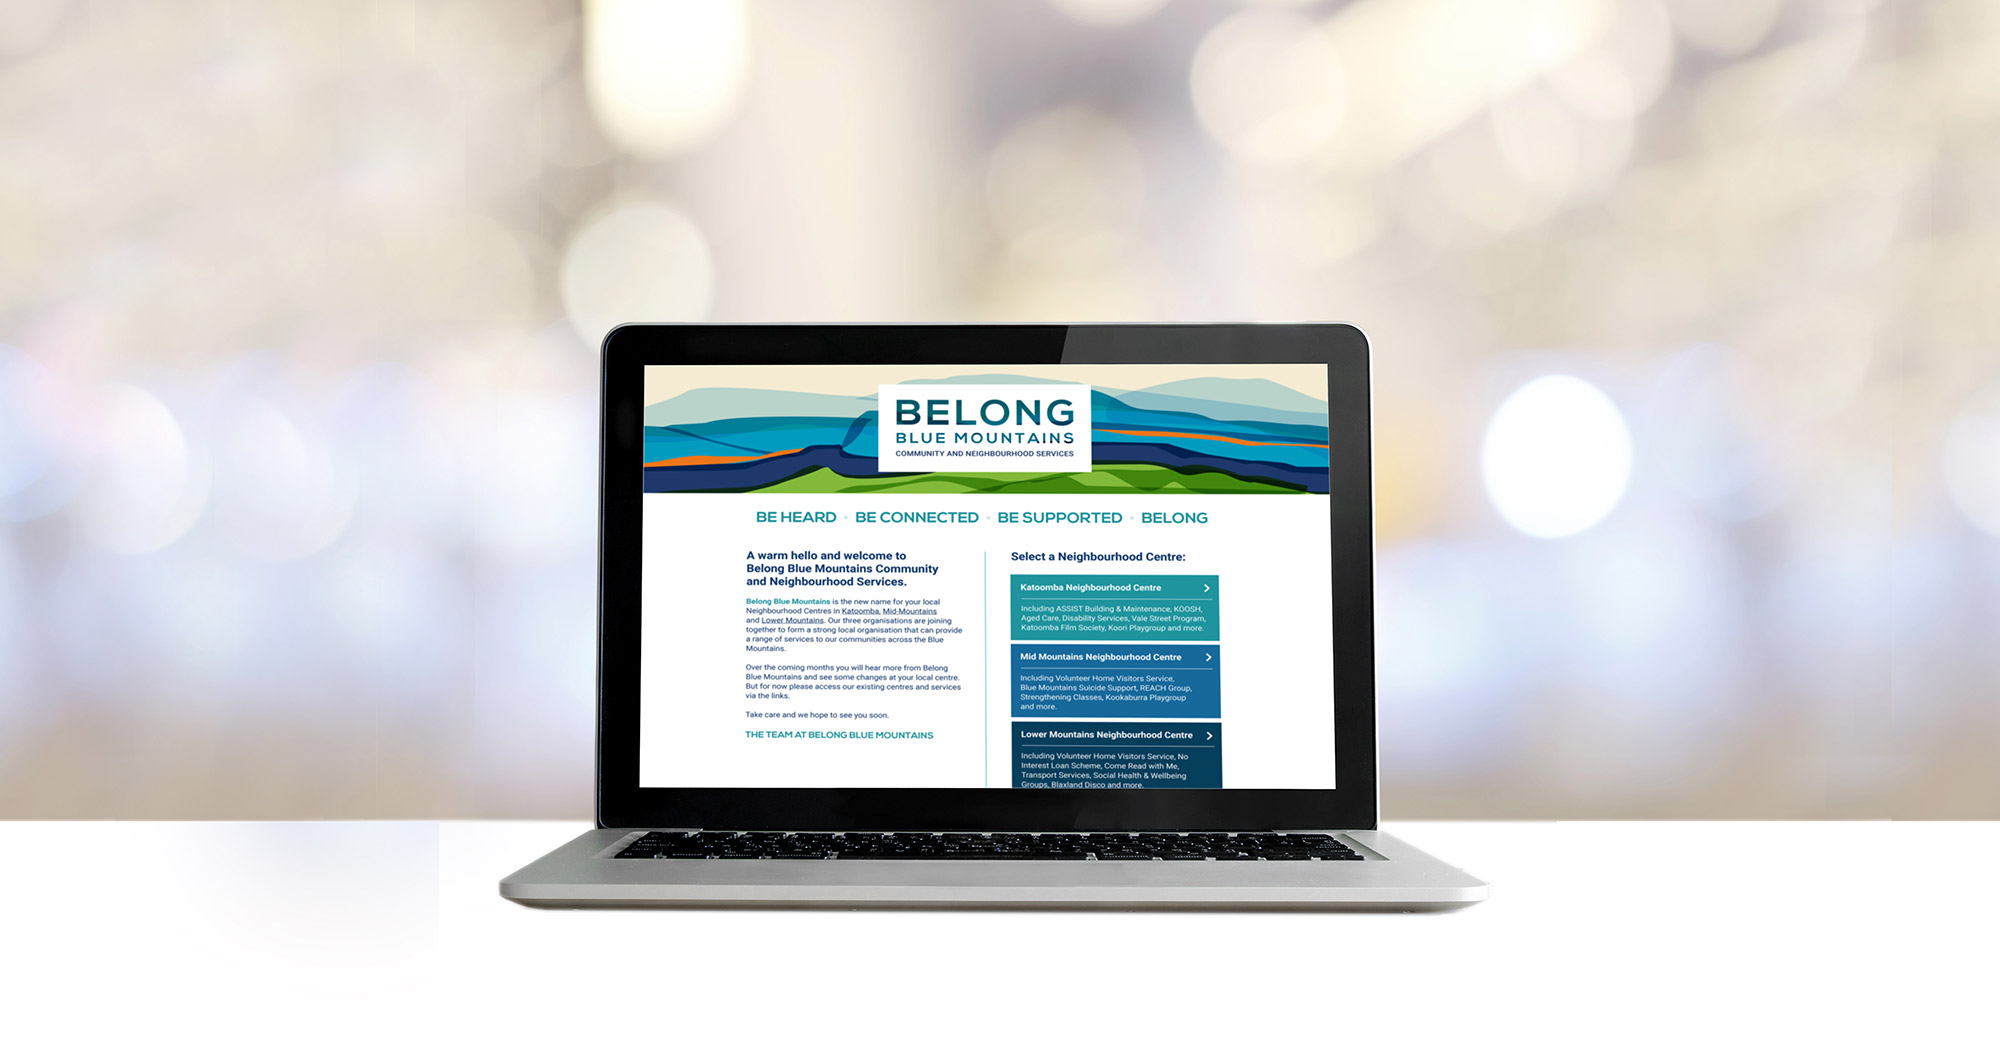 Belong Blue Mountains website design